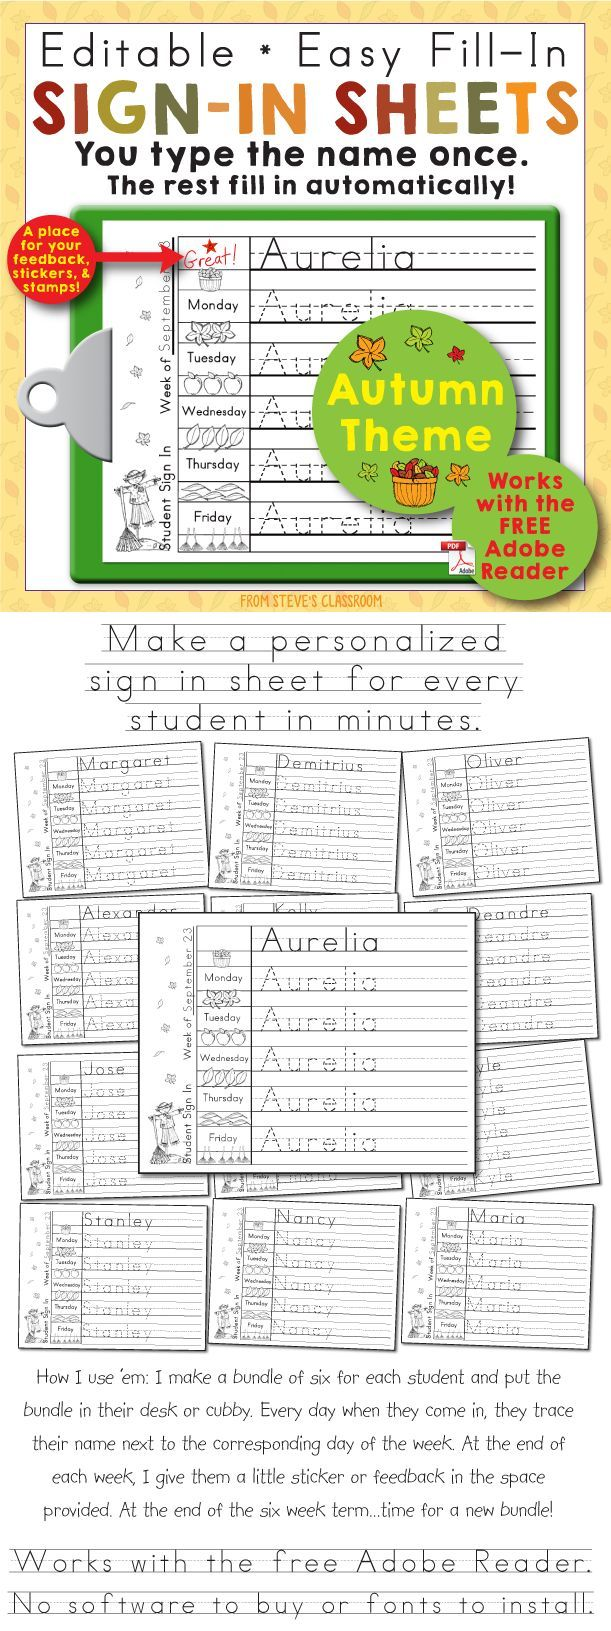 Free! Editable Print-Practice Weekly Sign In Sheets - Autumn Theme. You can use this Adobe PDF template to make a personalized sign in sheet for every student in the class in minutes. Great for keeping track of attendance in preschool and kindergarten. Free!